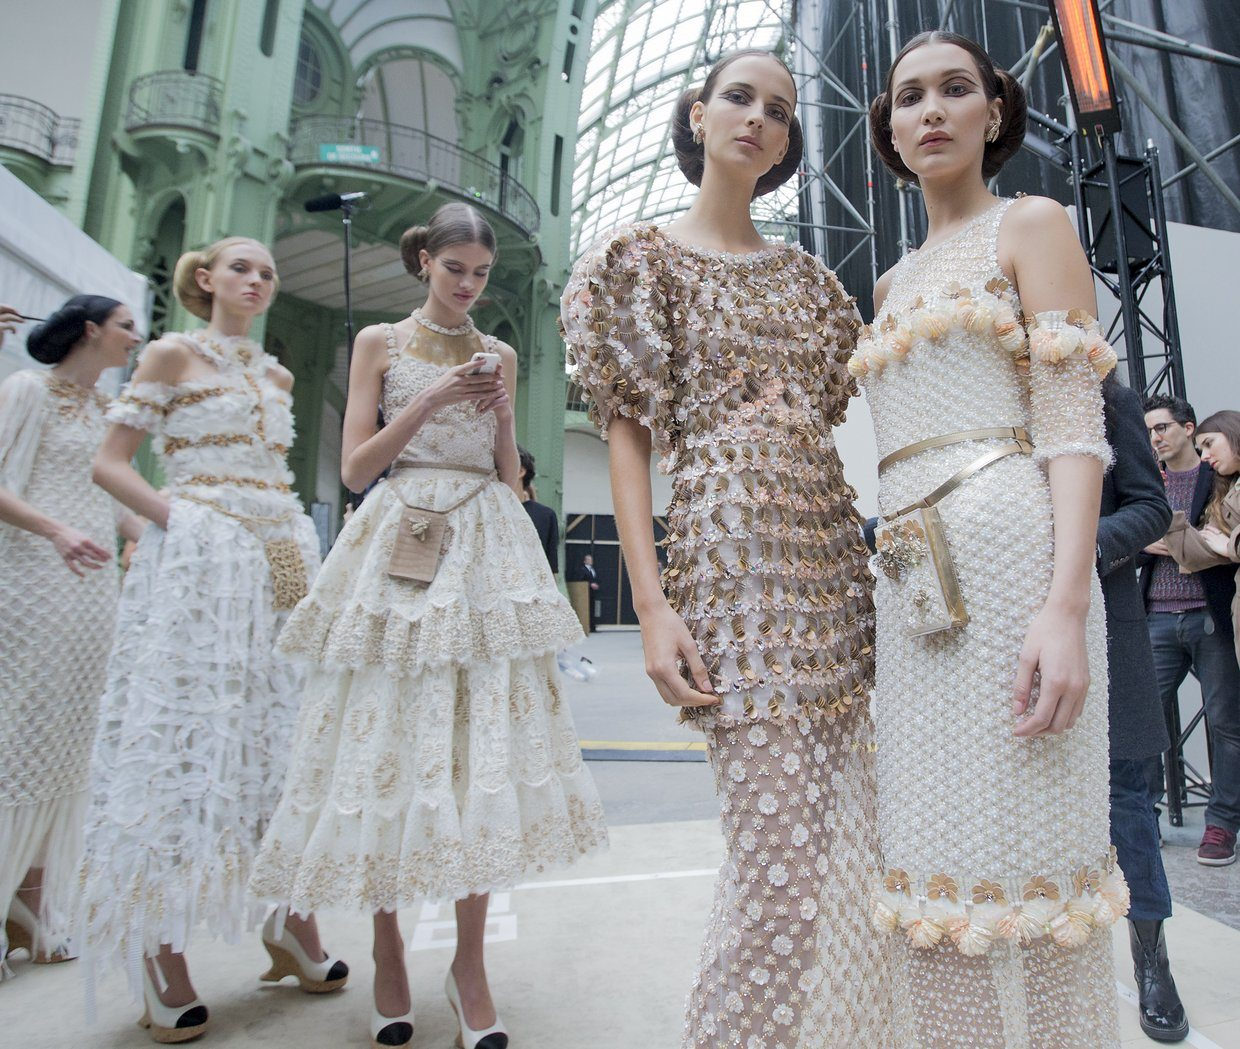 chanel-spring-2016-couture-backstage-kevin-tachman-22